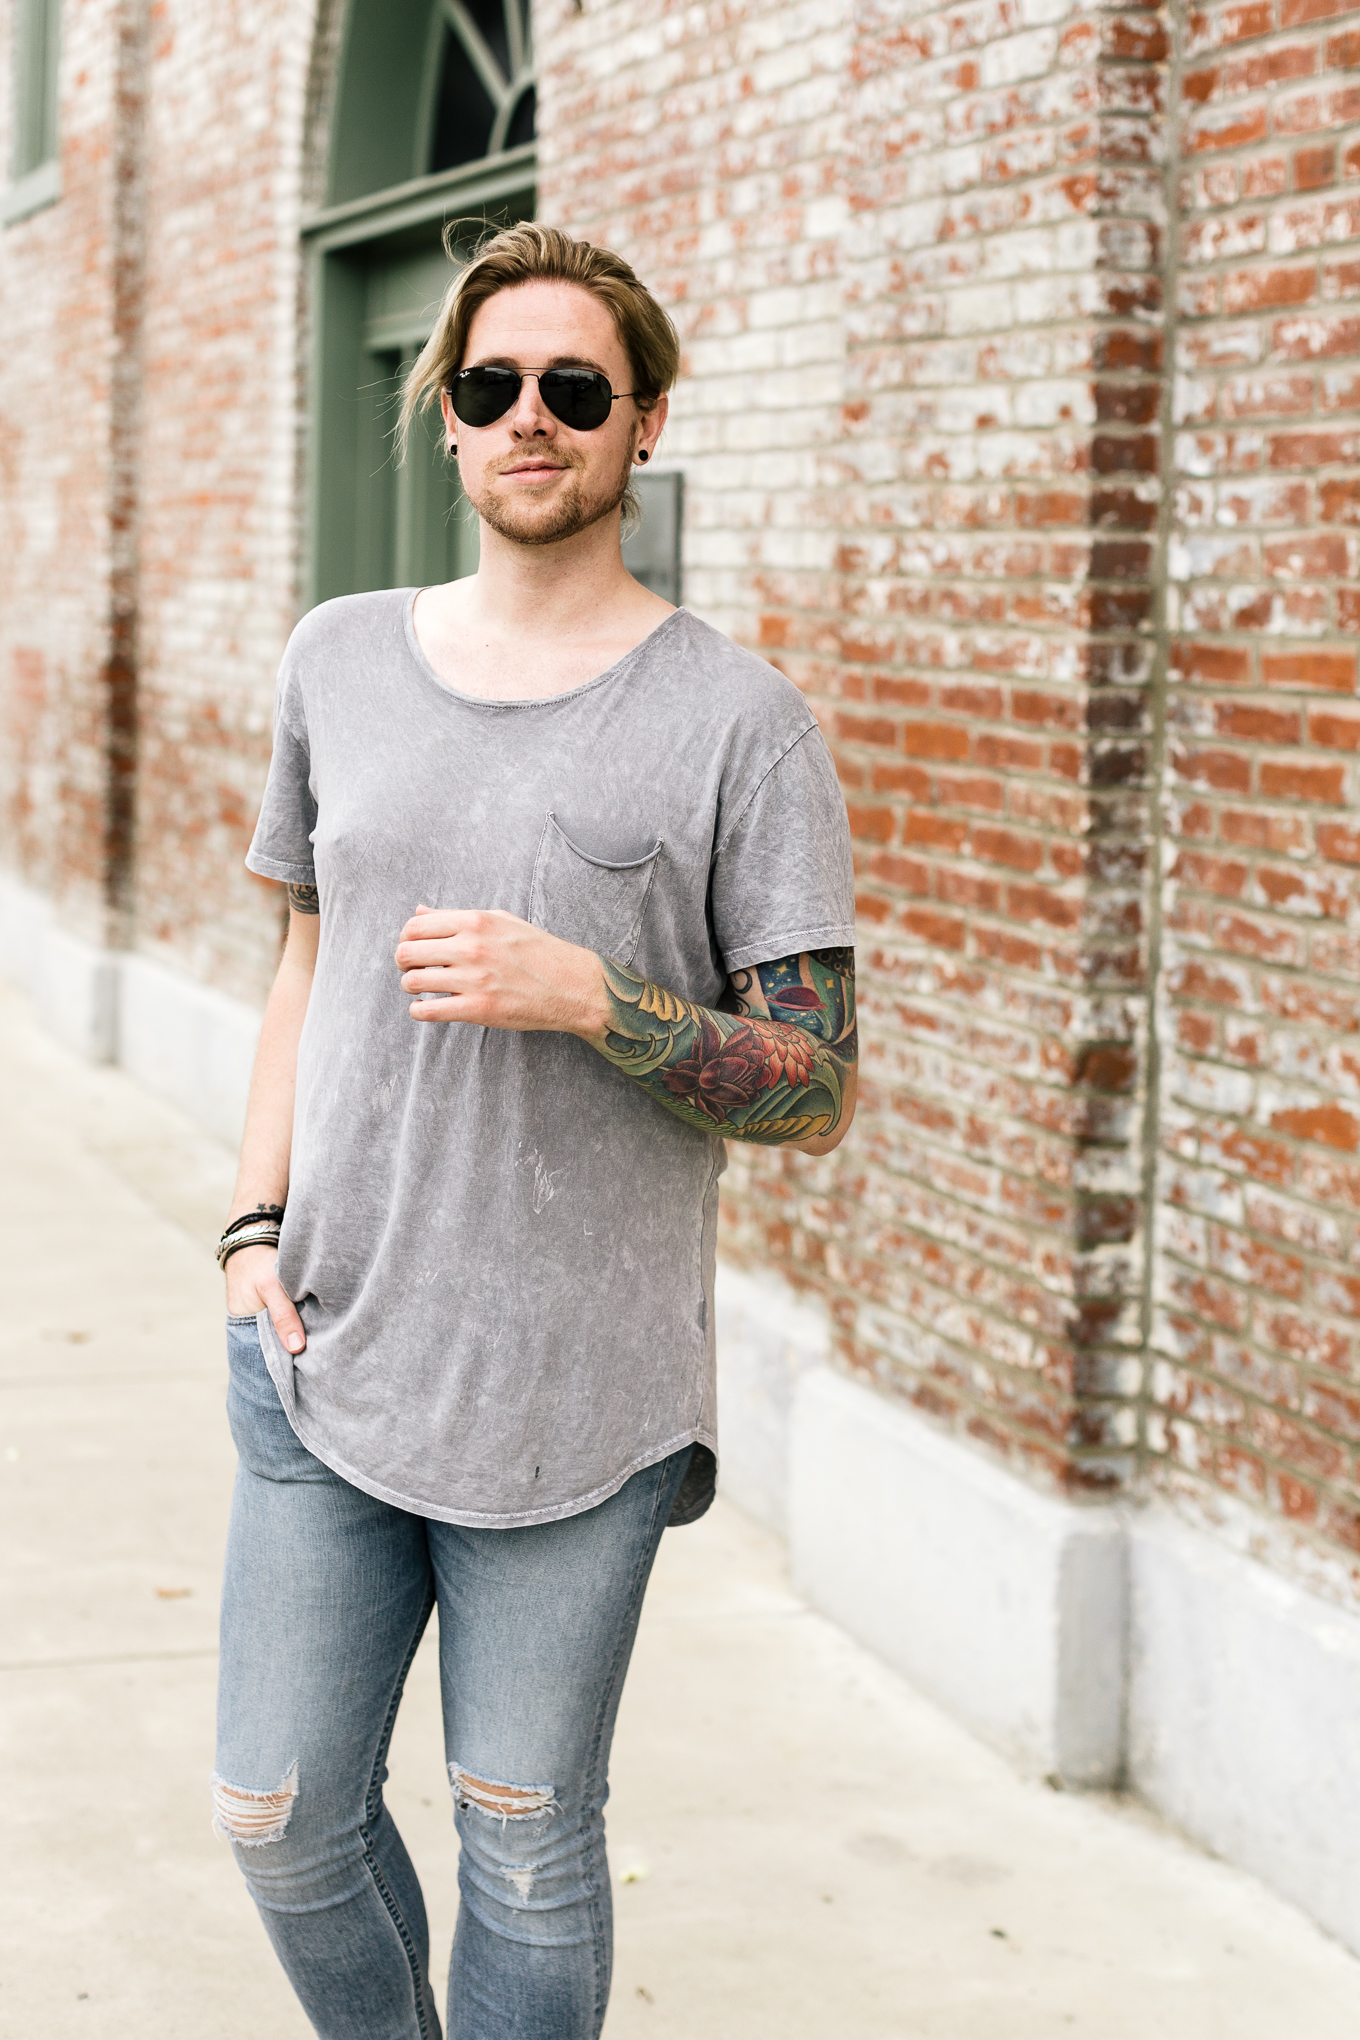 mens fashion blog, helm boots, rag & bone jeans, personal style blog, the kentucky gent